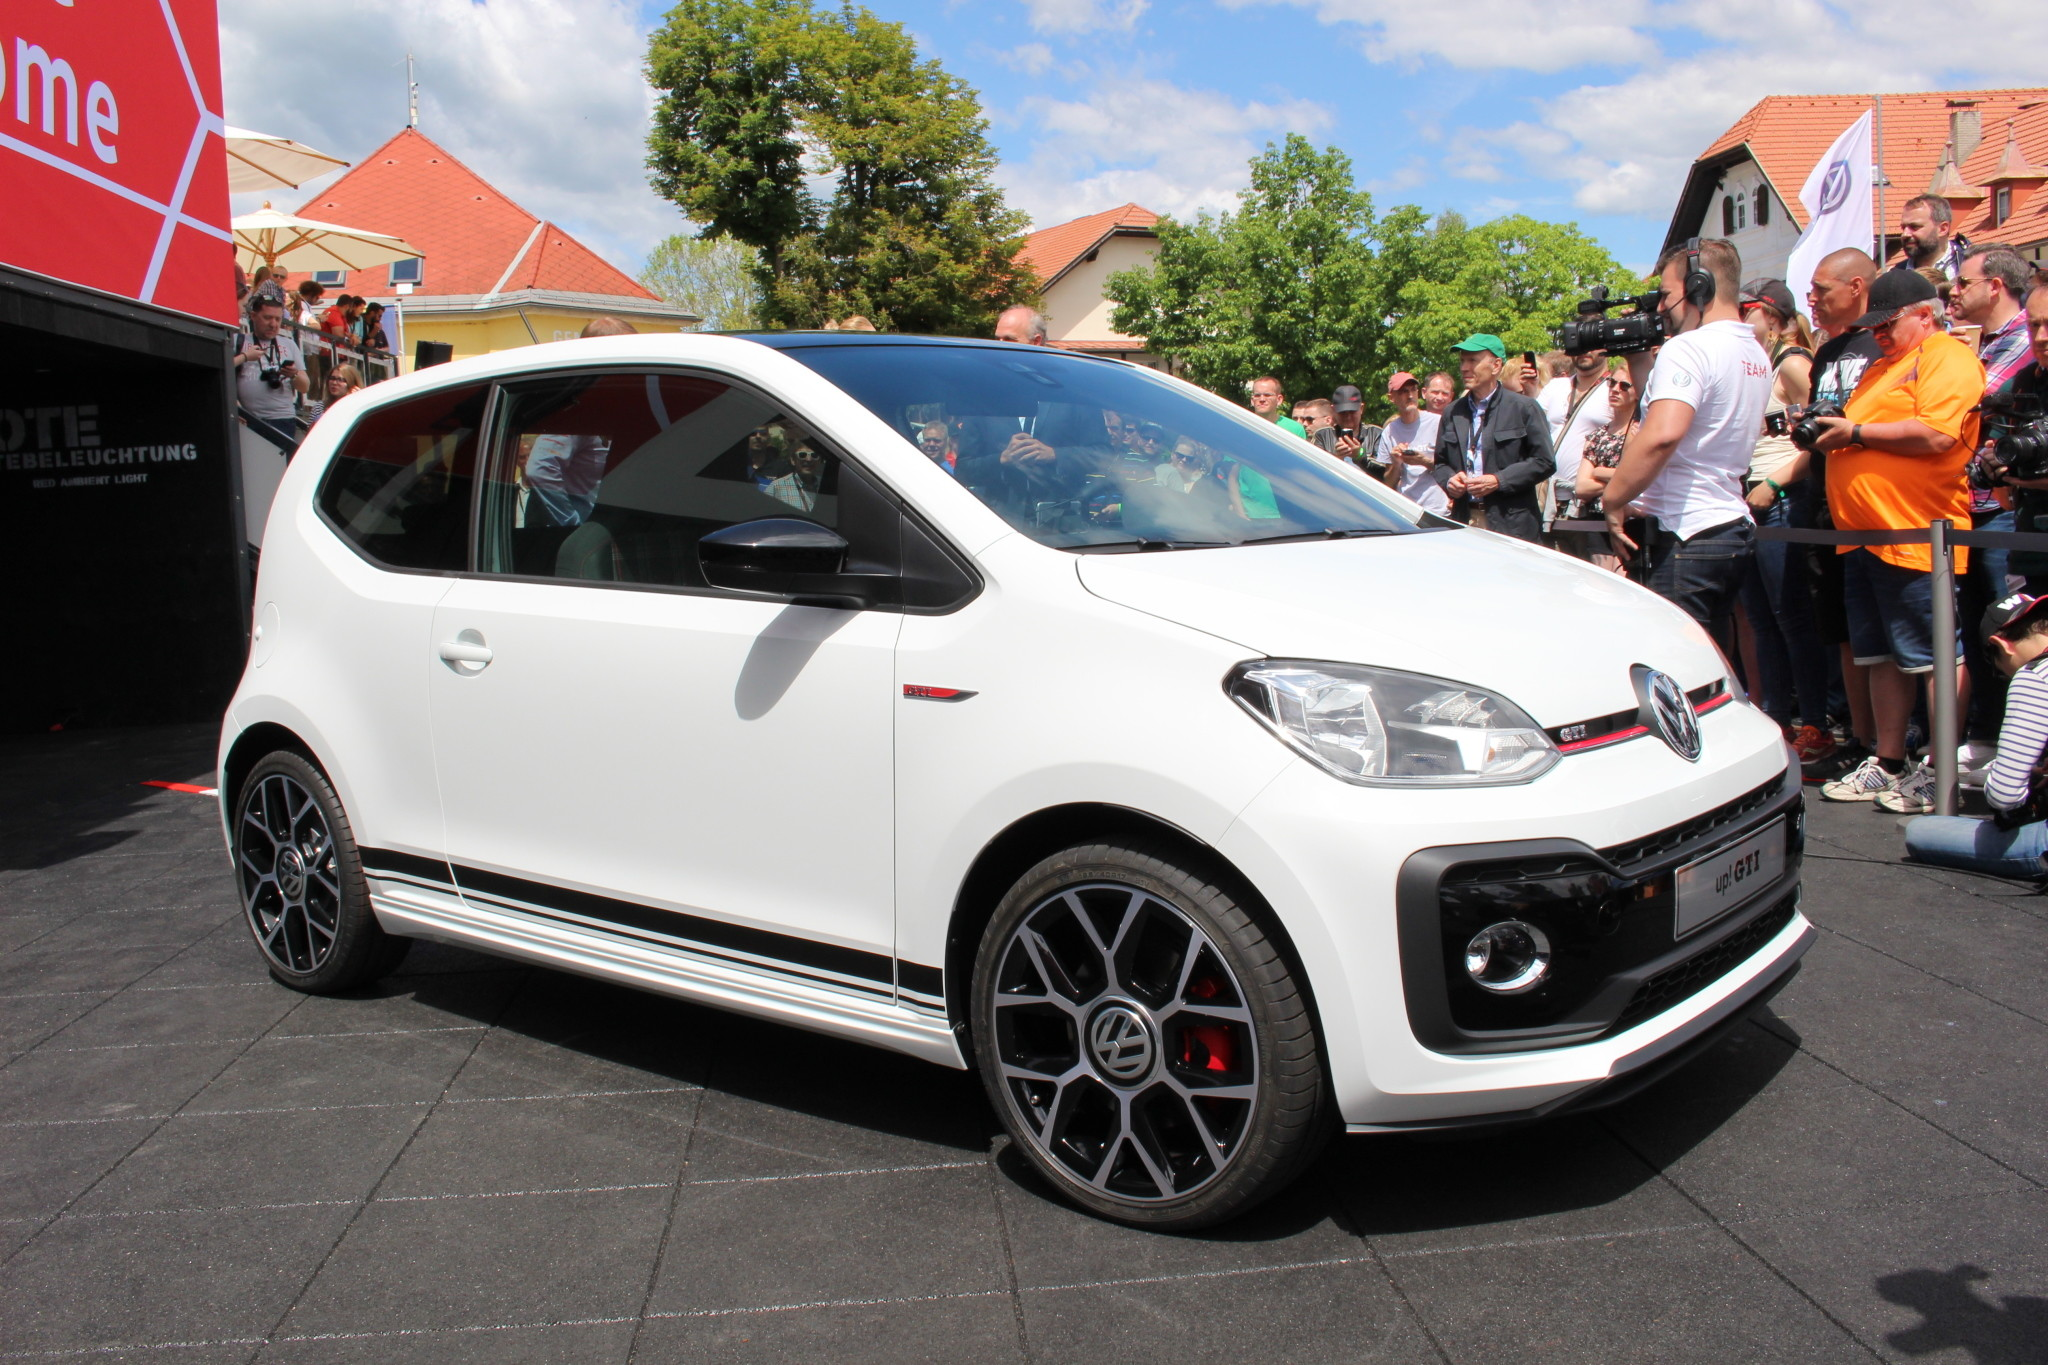 Volkswagen up! GTI concept car